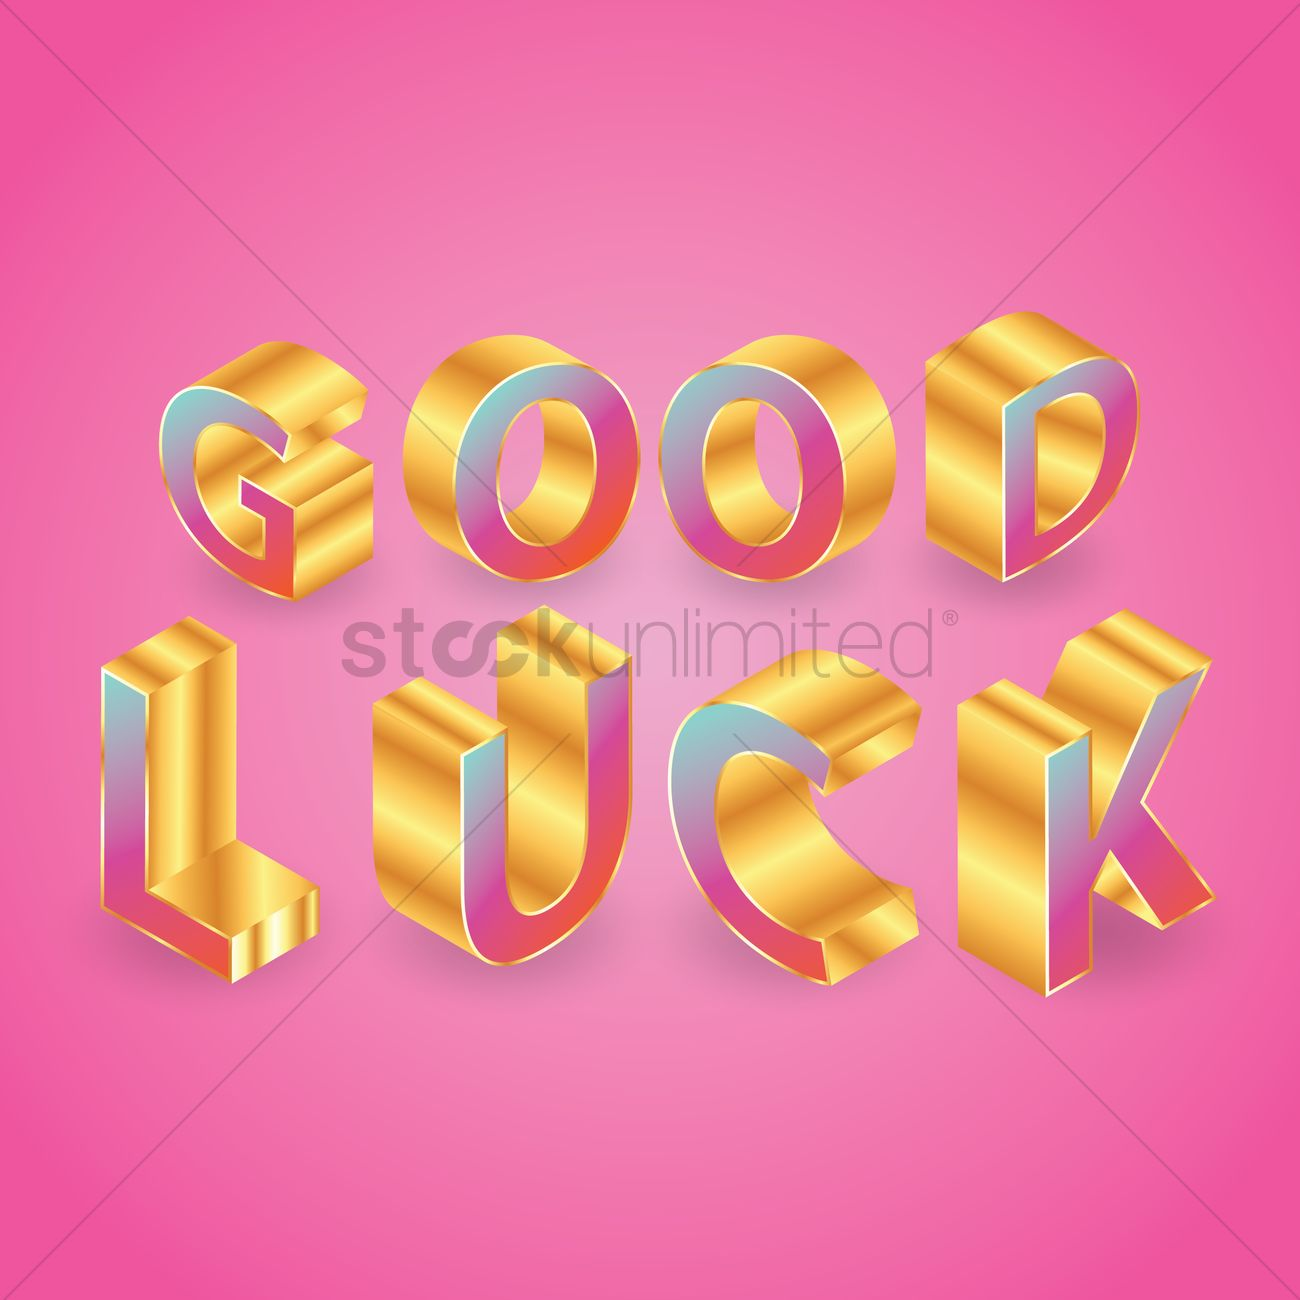 Good luck greeting vector image 1811185 stockunlimited good luck greeting vector graphic kristyandbryce Images